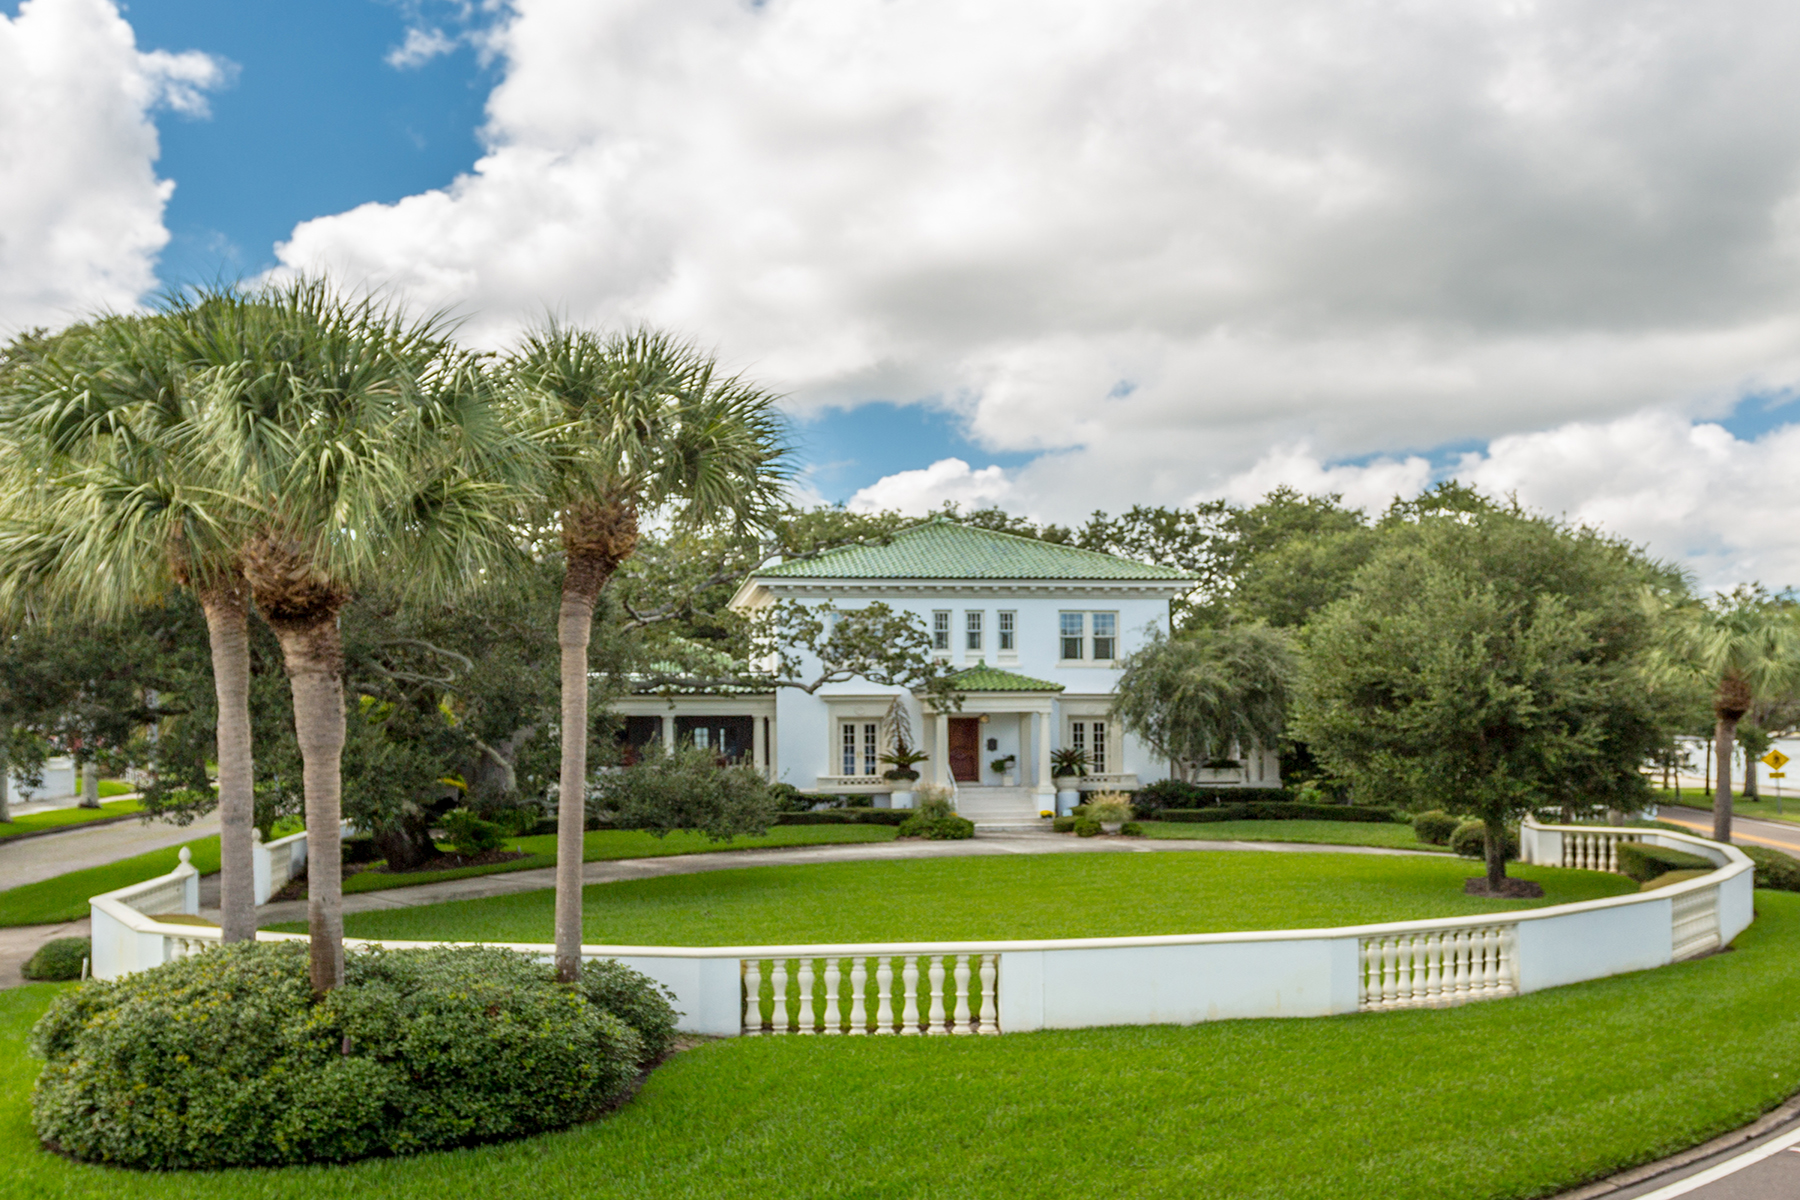 Single Family Home for Sale at ST. PETERSBURG 1800 Northshore Dr NE Snell Isle, St. Petersburg, Florida, 33704 United States